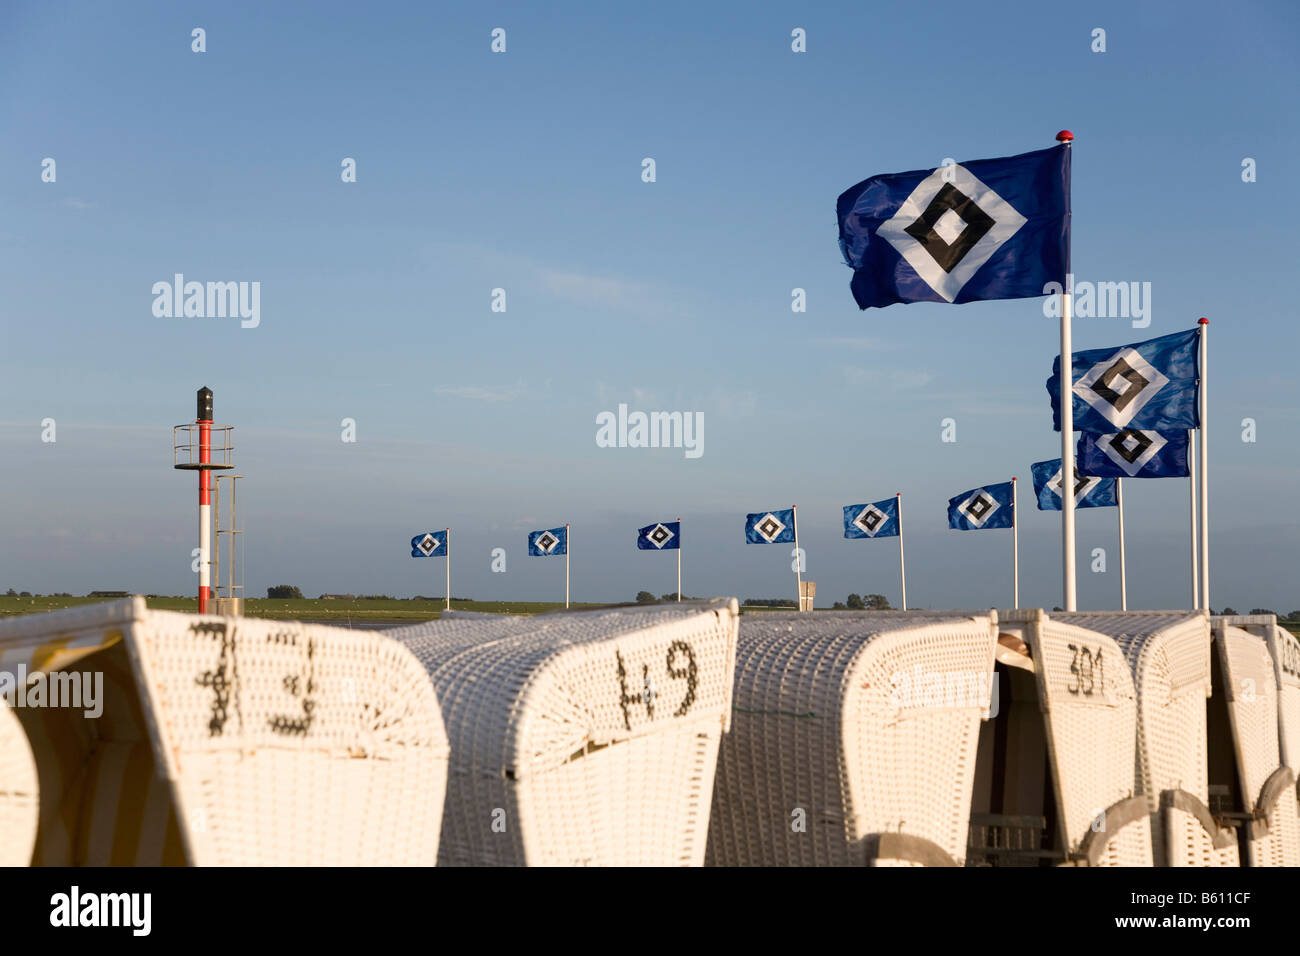 Flags of the Hamburger Sport Verein, or HSV, being flown over roofed wicker beach chair as part of the campaign, - Stock Image